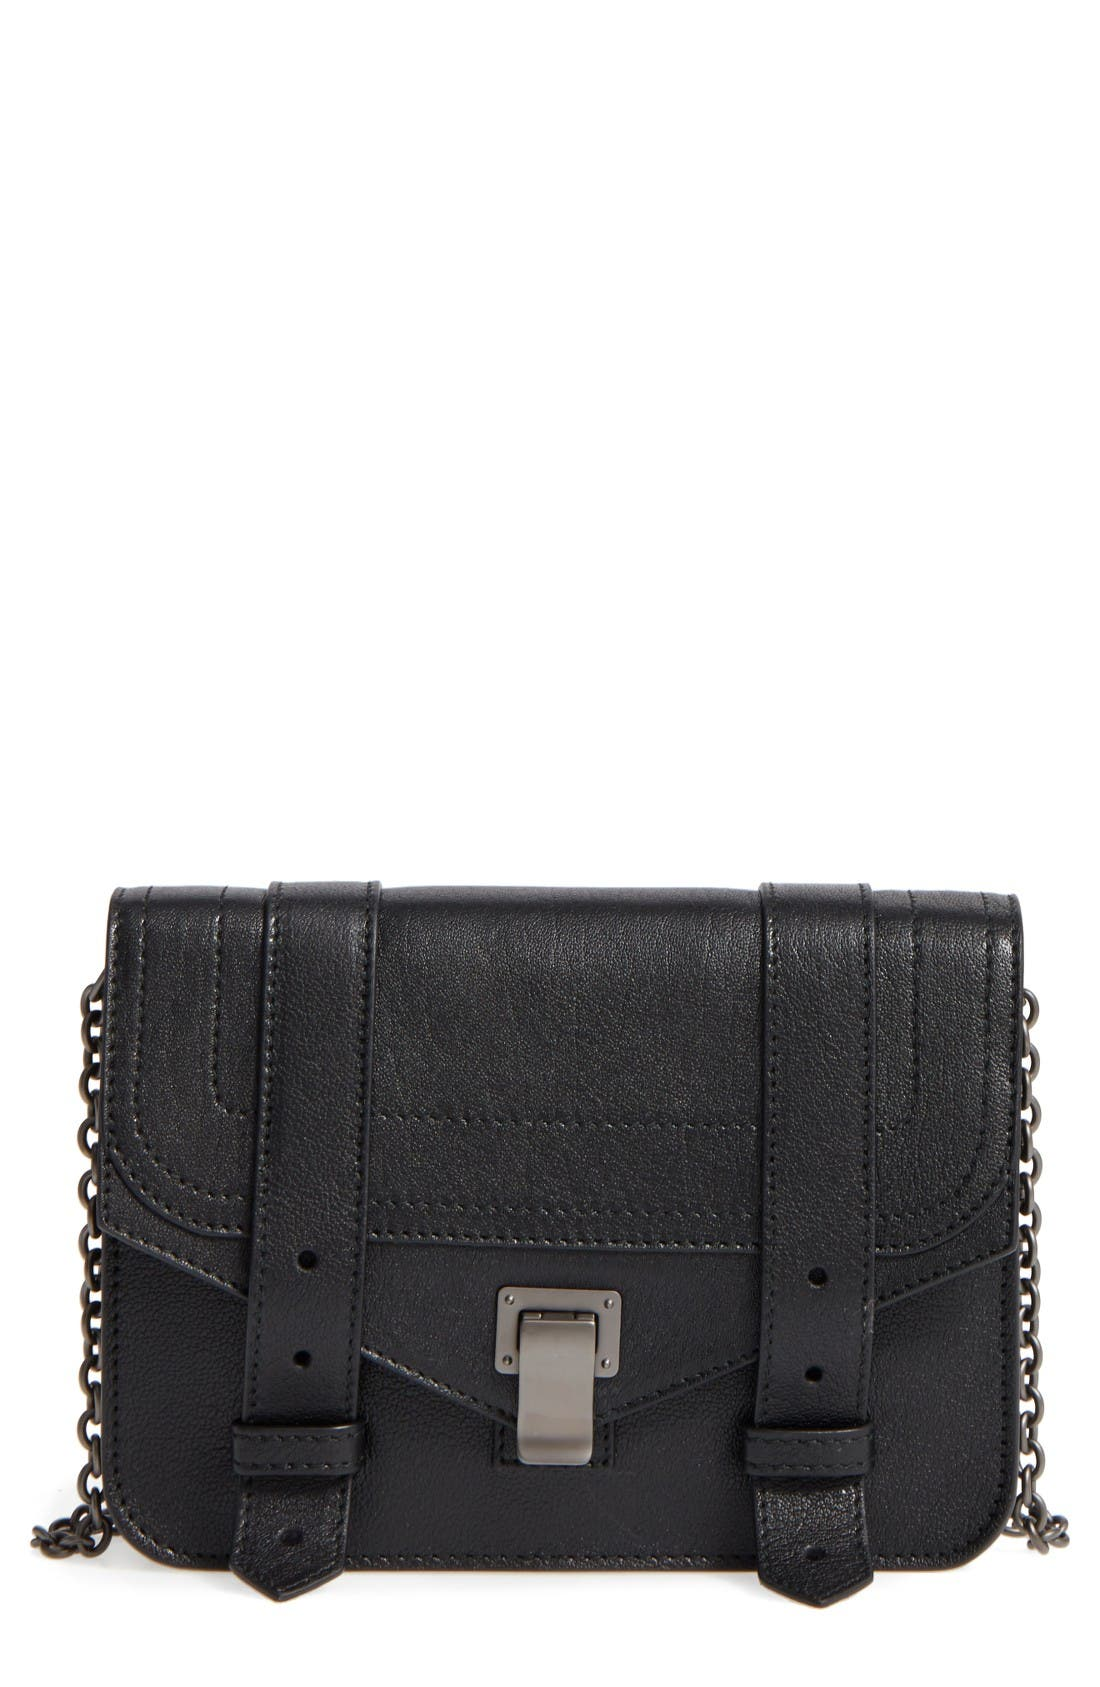 PS1 Chain Wallet,                         Main,                         color, Black